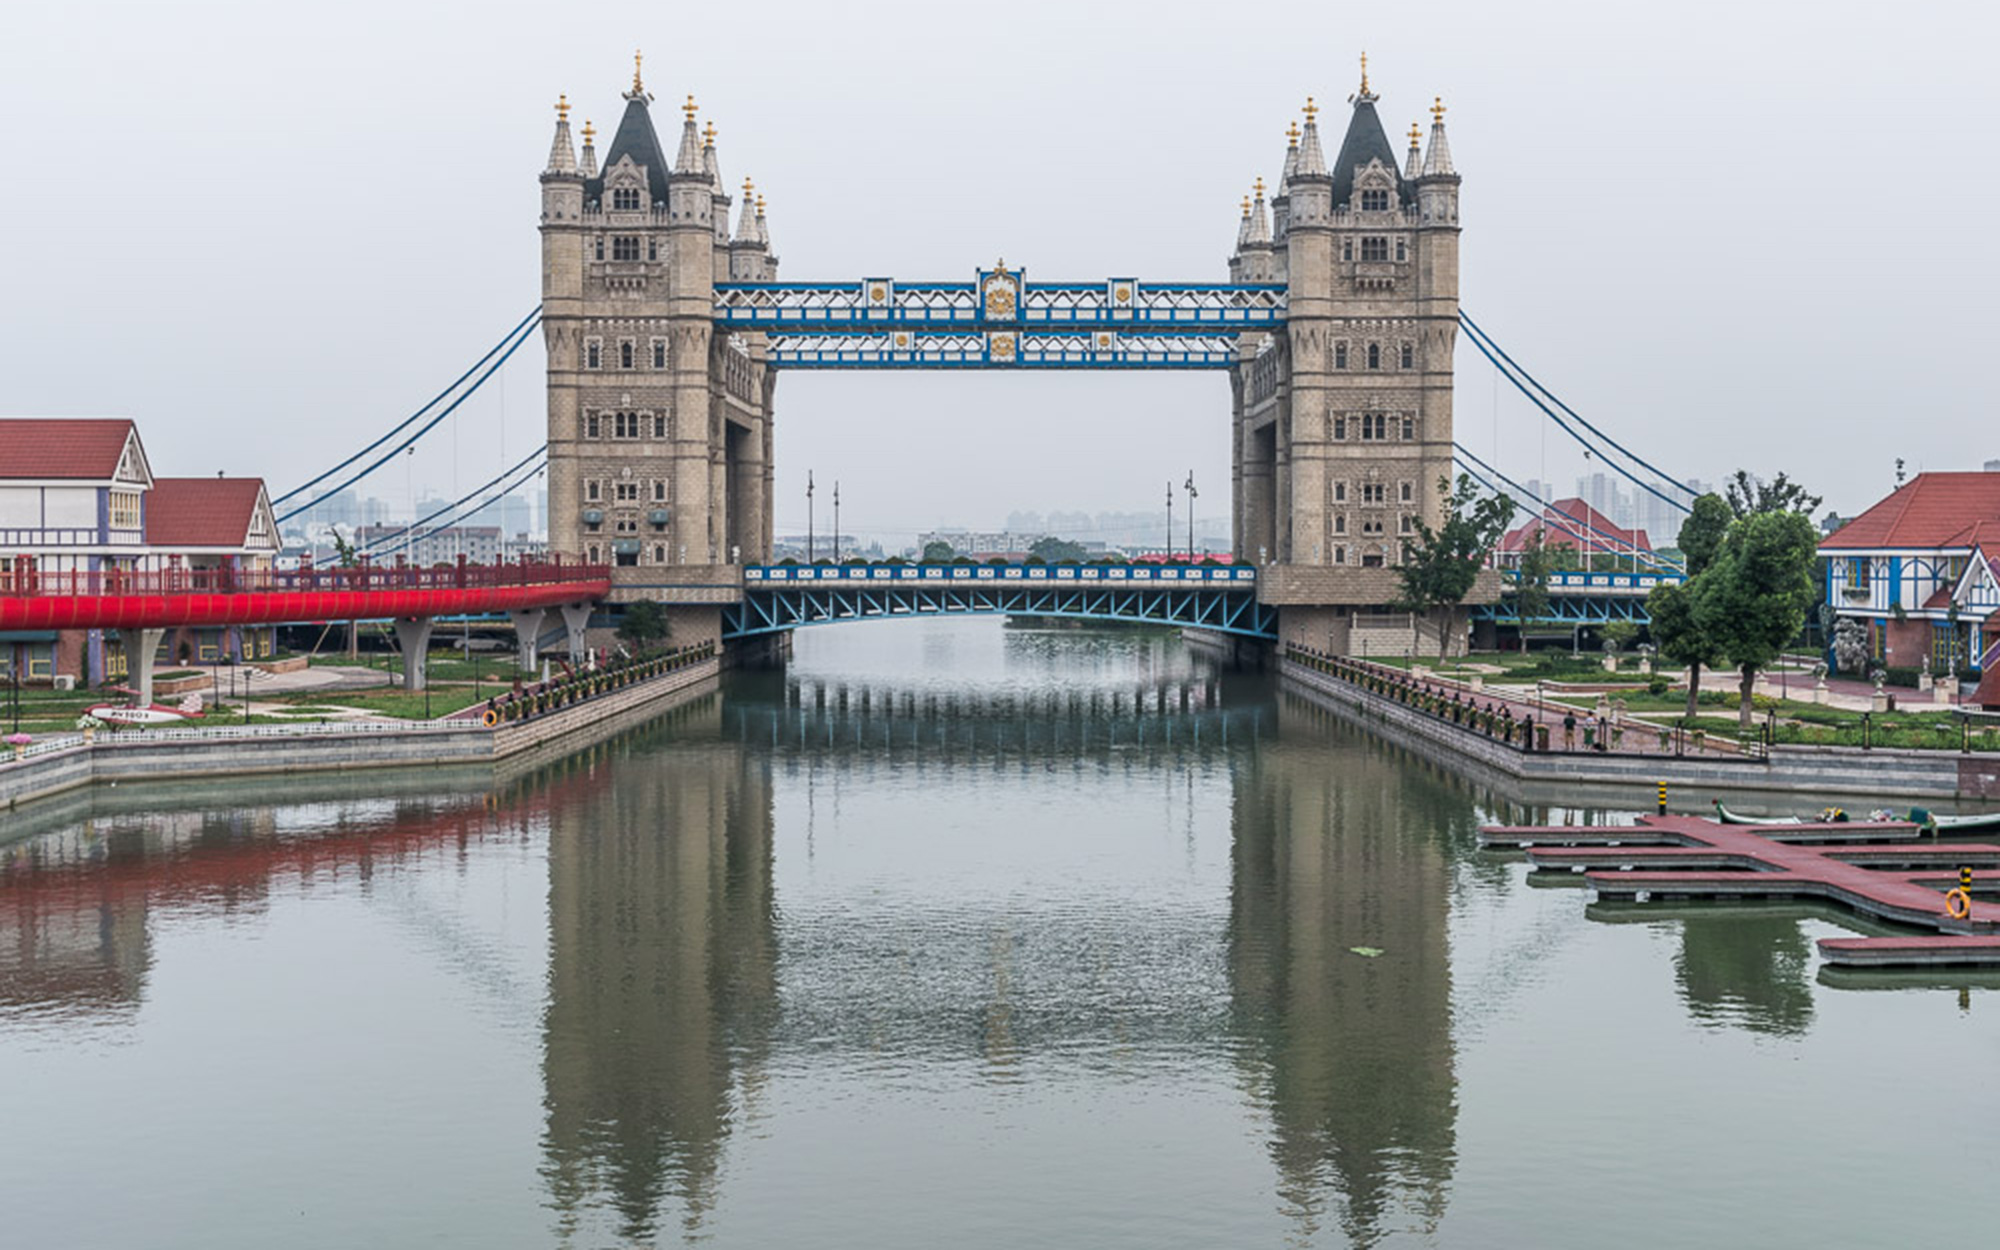 London's Tower Bridge in China